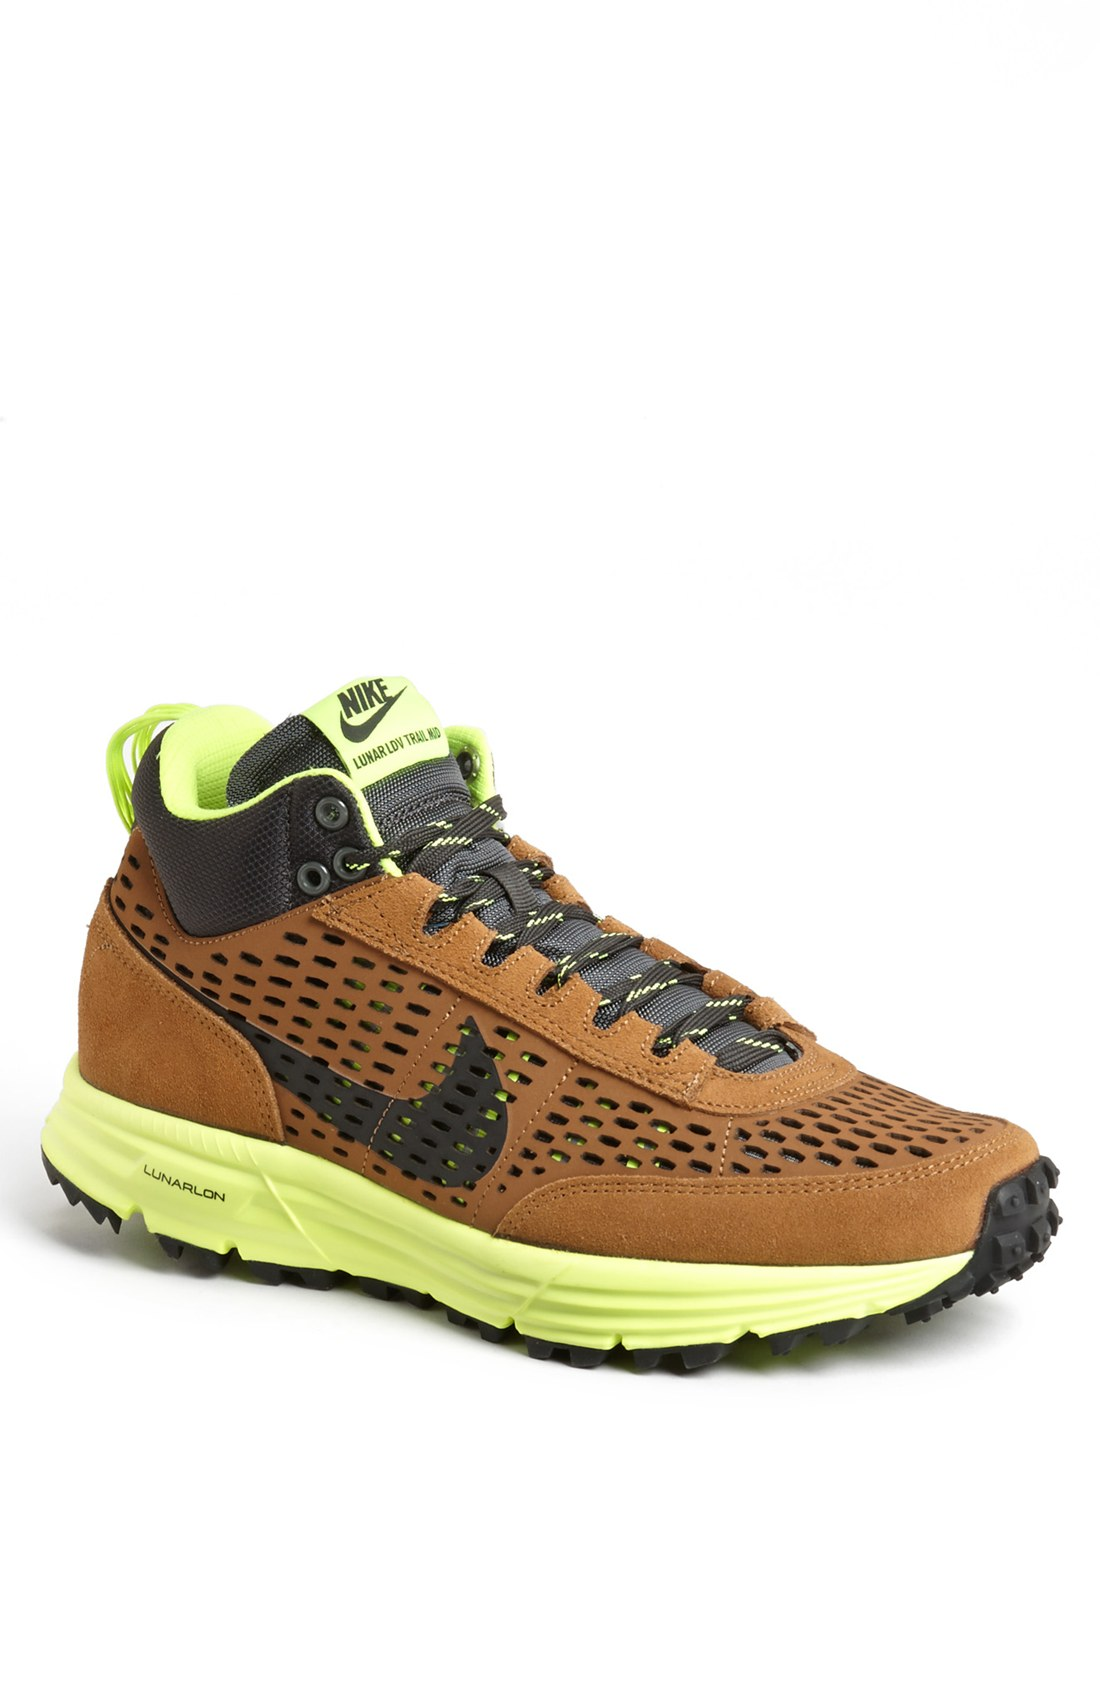 nike lunar ldv sneaker boot in brown for ale brown